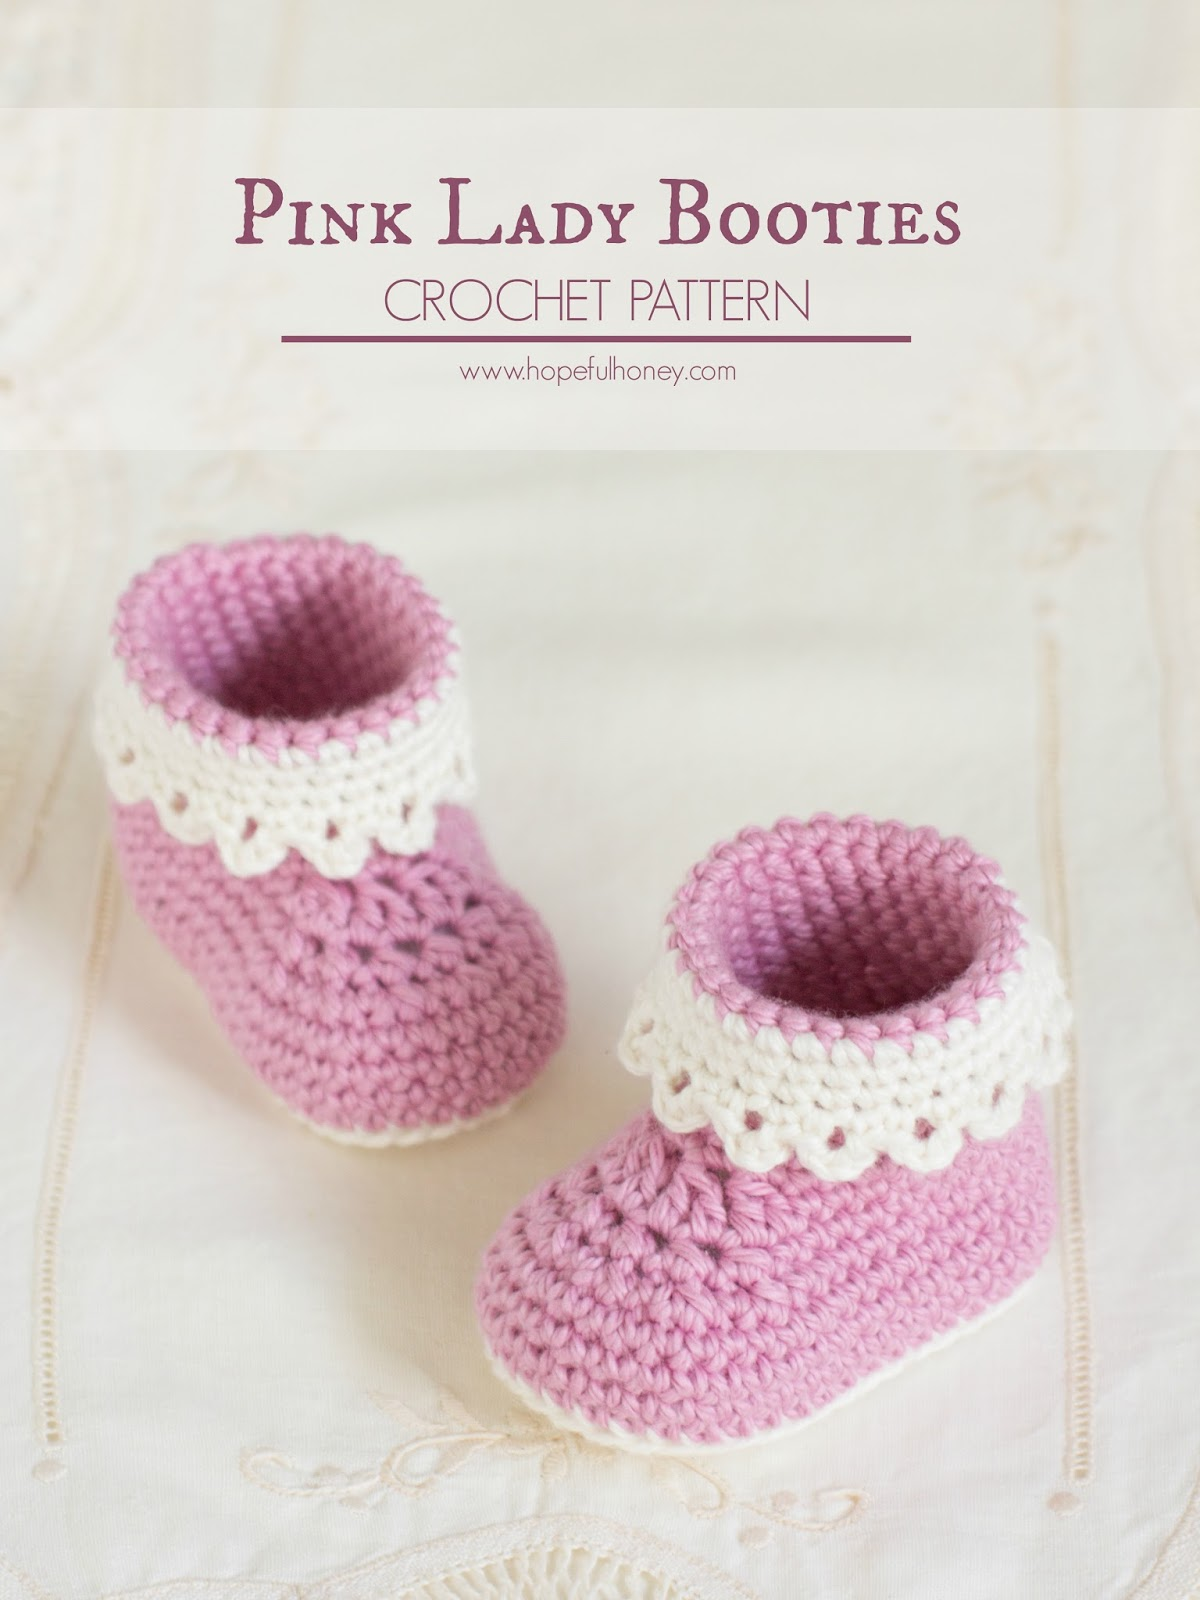 Crochet Baby Booties Sole Pattern : Hopeful Honey Craft, Crochet, Create: Pink Lady Baby ...